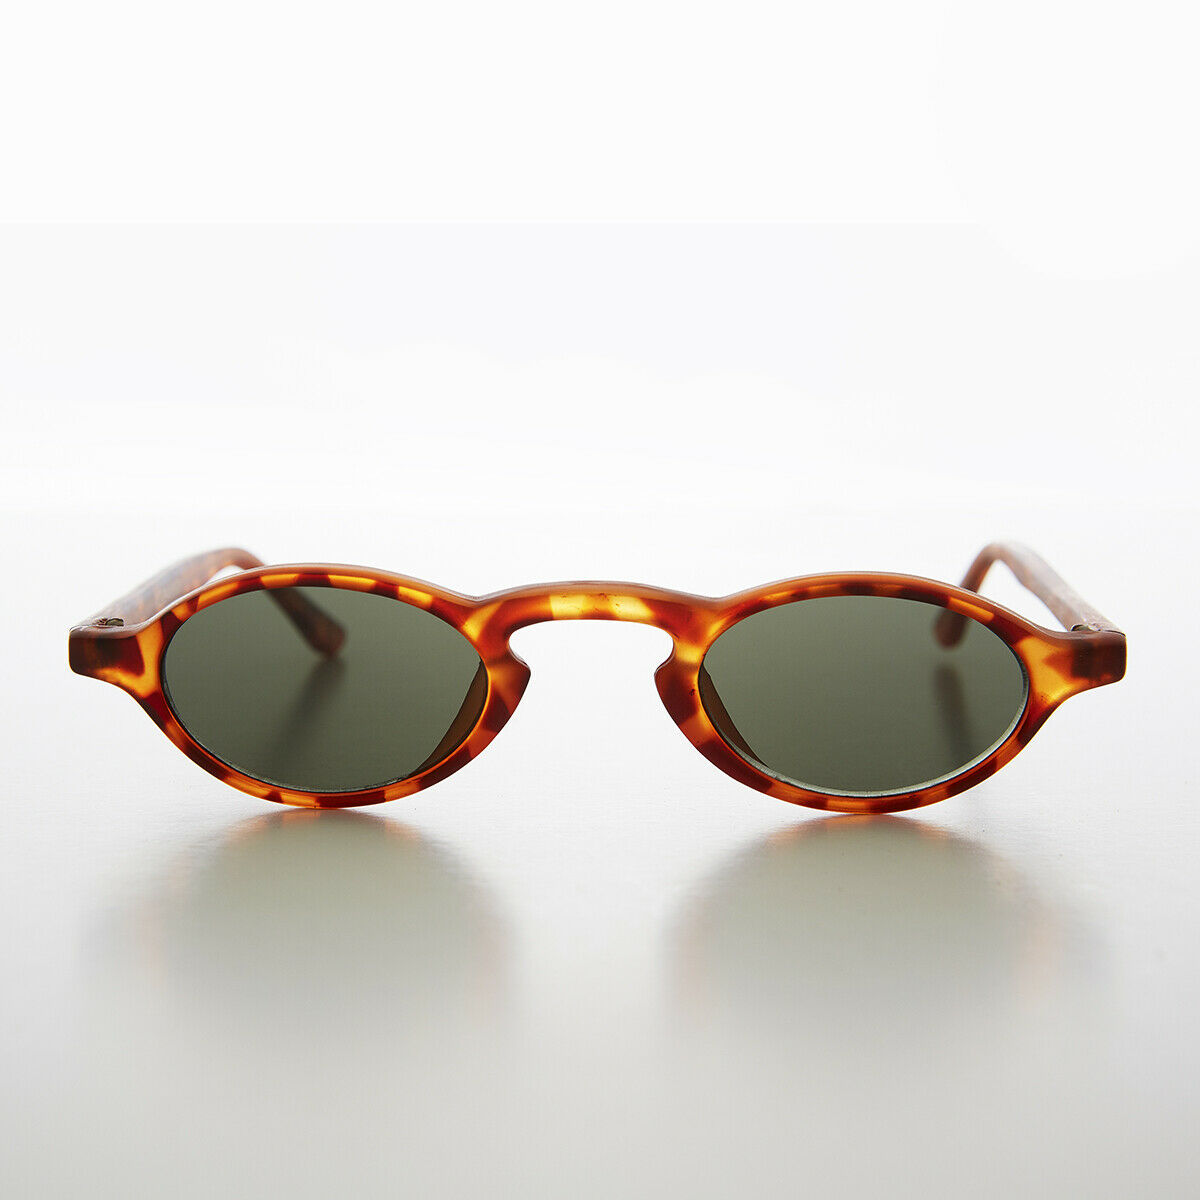 Tiny Oval Spectacle Vintage 90s Steampunk Sunglass Matte Tortoise - Hester